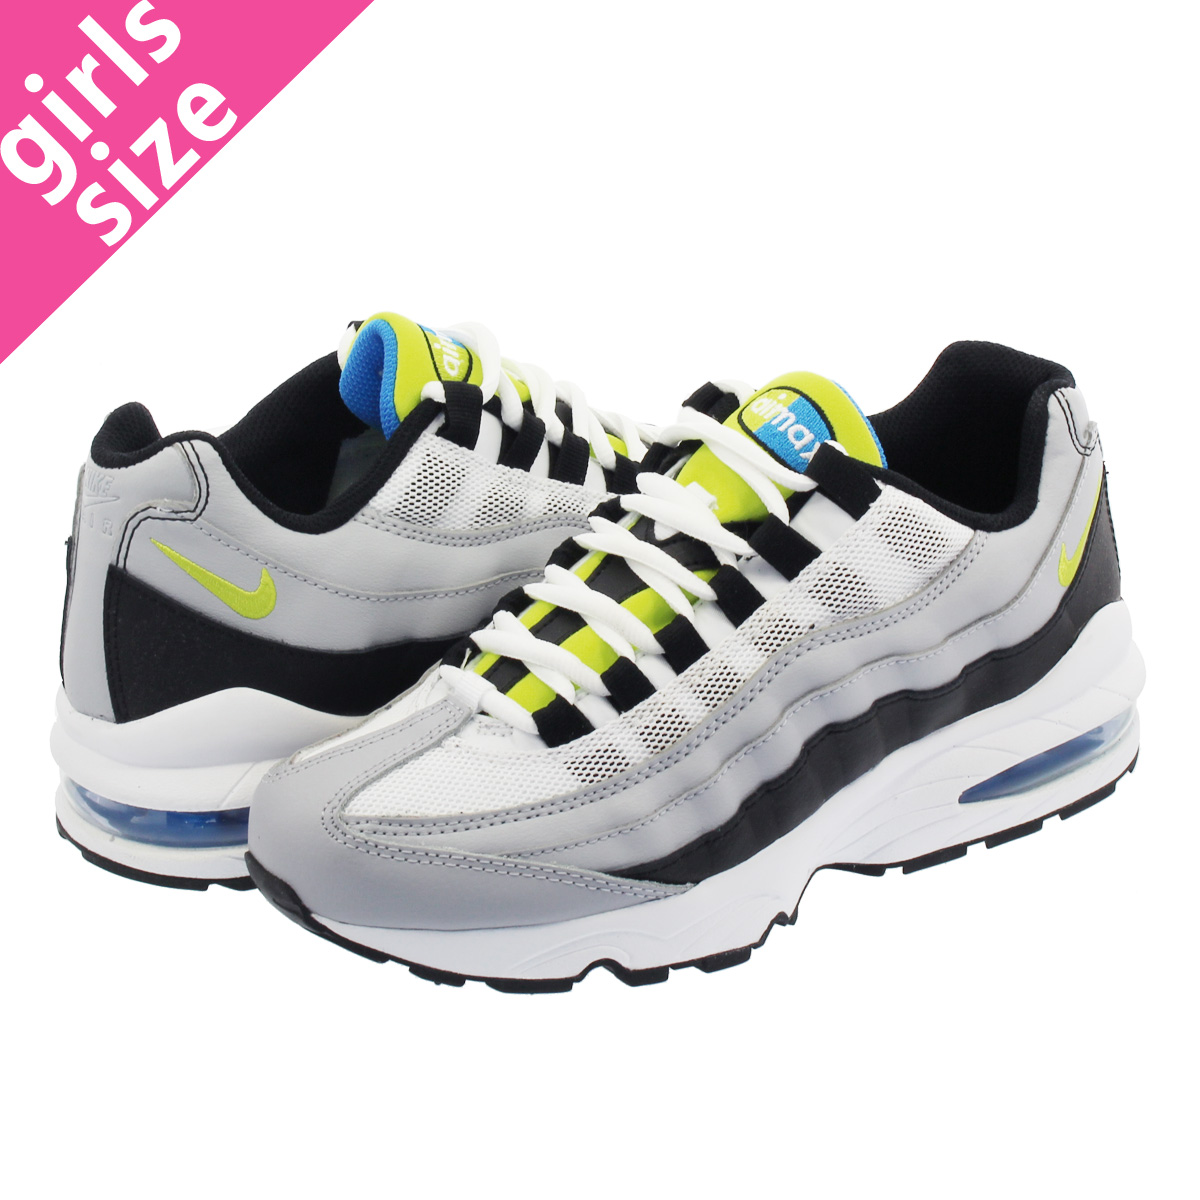 adc4be36ac2eee NIKE AIR MAX 95 GS Kie Ney AMAX 95 GS WOLF GREY CYBER BLACK PHOTO BLUE  905